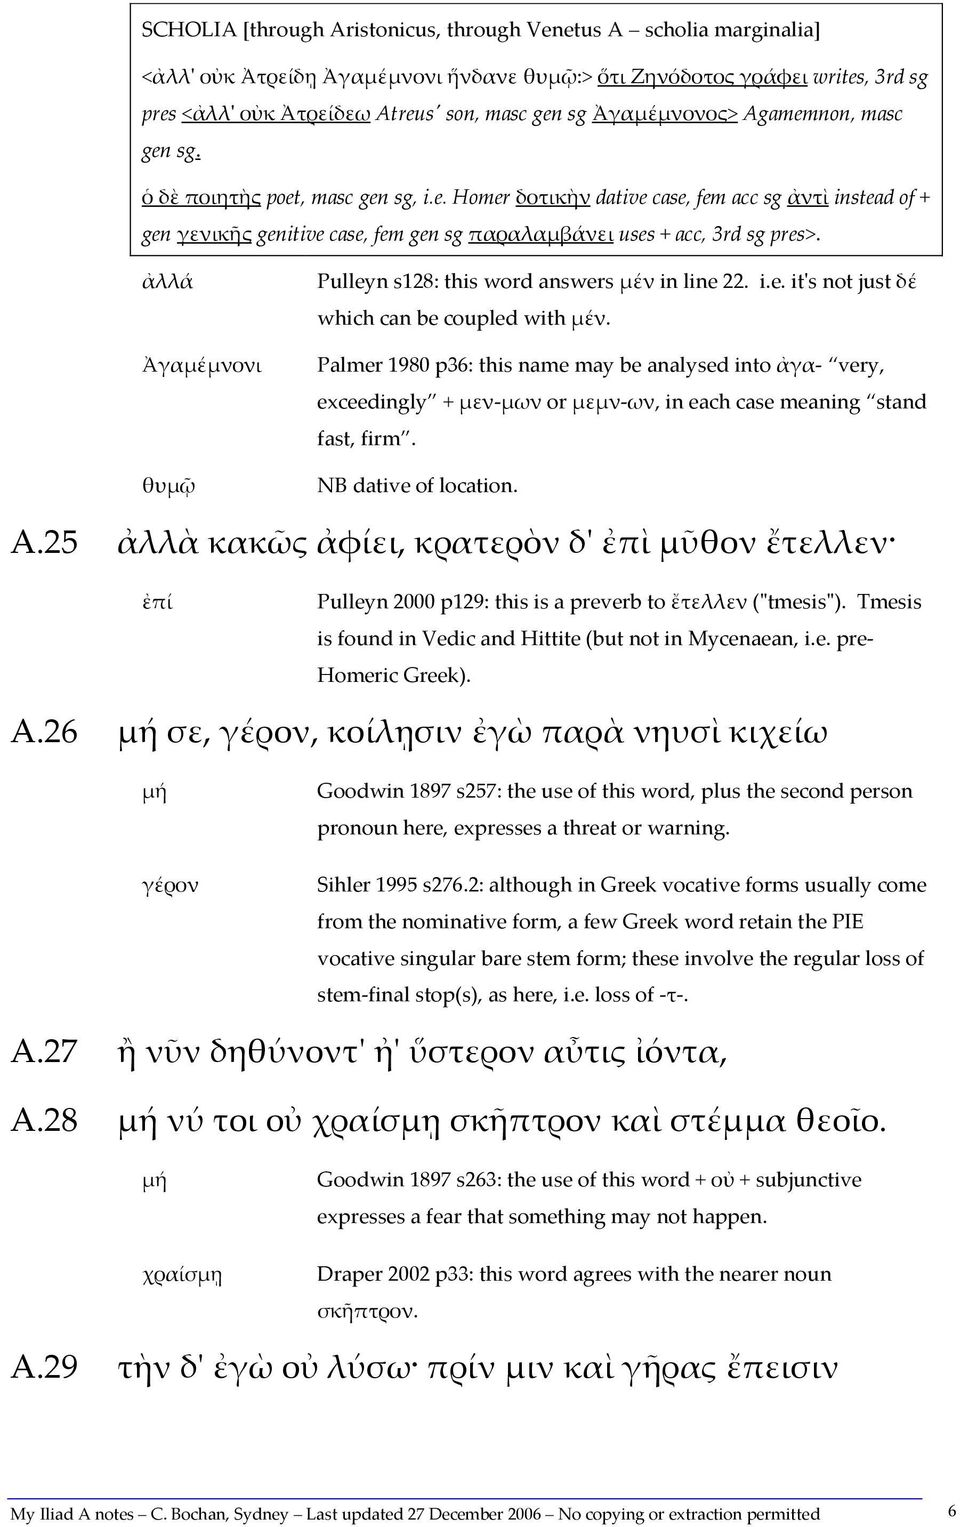 ἀλλά Ἀγαμέμνονι θυμῷ Pulleyn s128: this word answers μέν in line 22. i.e. it's not just δέ which can be coupled with μέν.